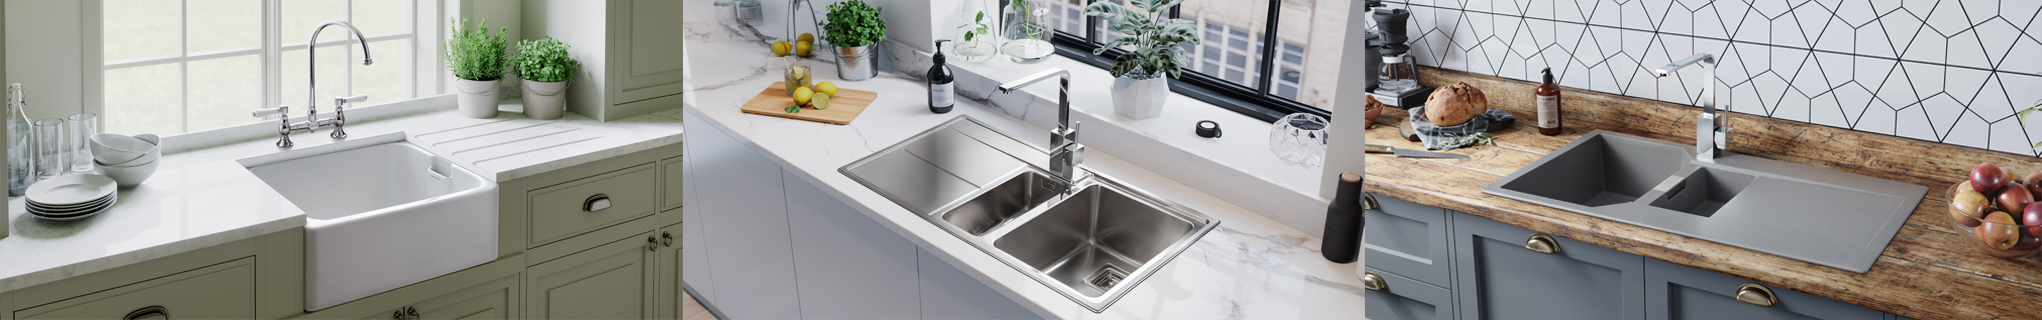 Rangemaster Sinks and Taps